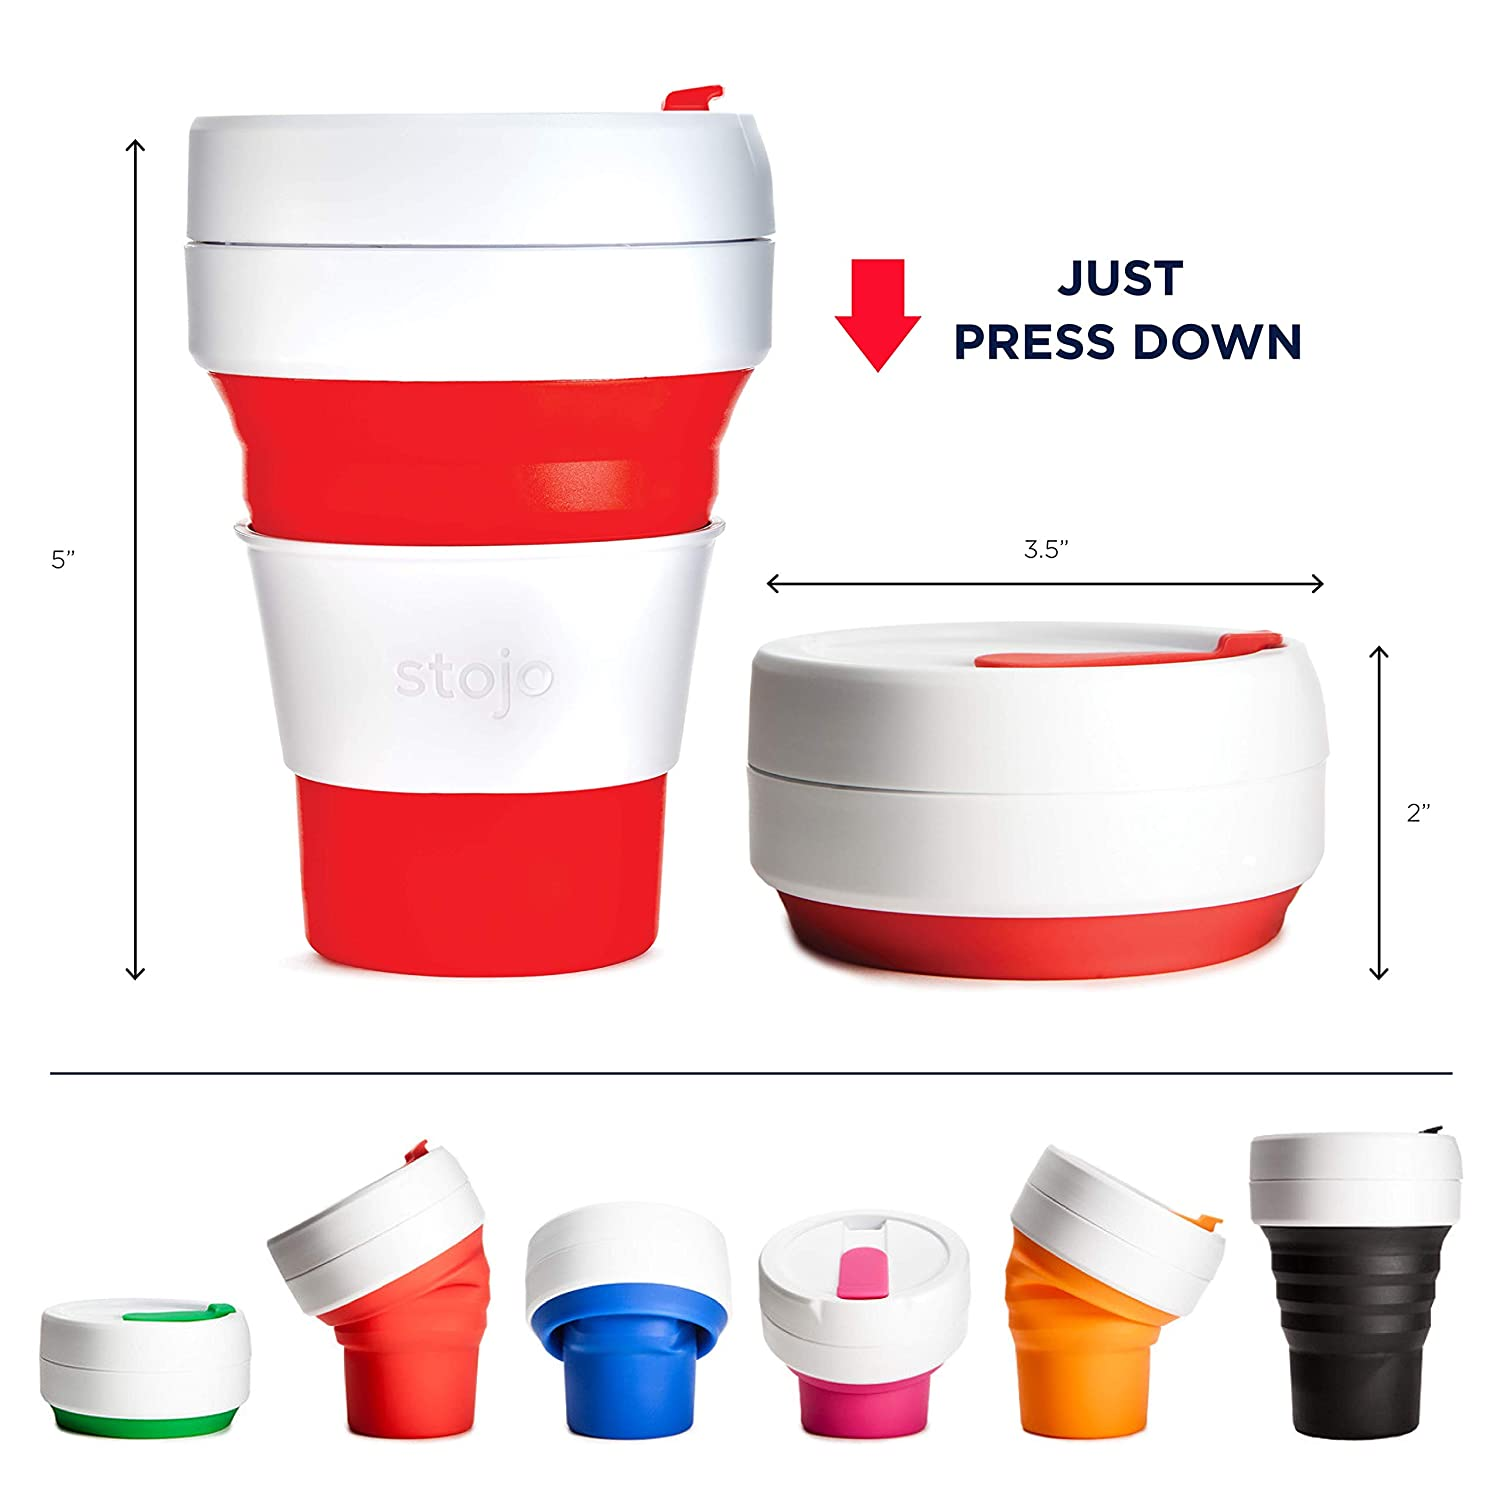 909893b9fe3 Stojo On The Go Coffee Cup | Pocket Size Collapsible Silicone Travel Cup -  Red, 12oz / 355ml: Amazon.co.uk: Kitchen & Home